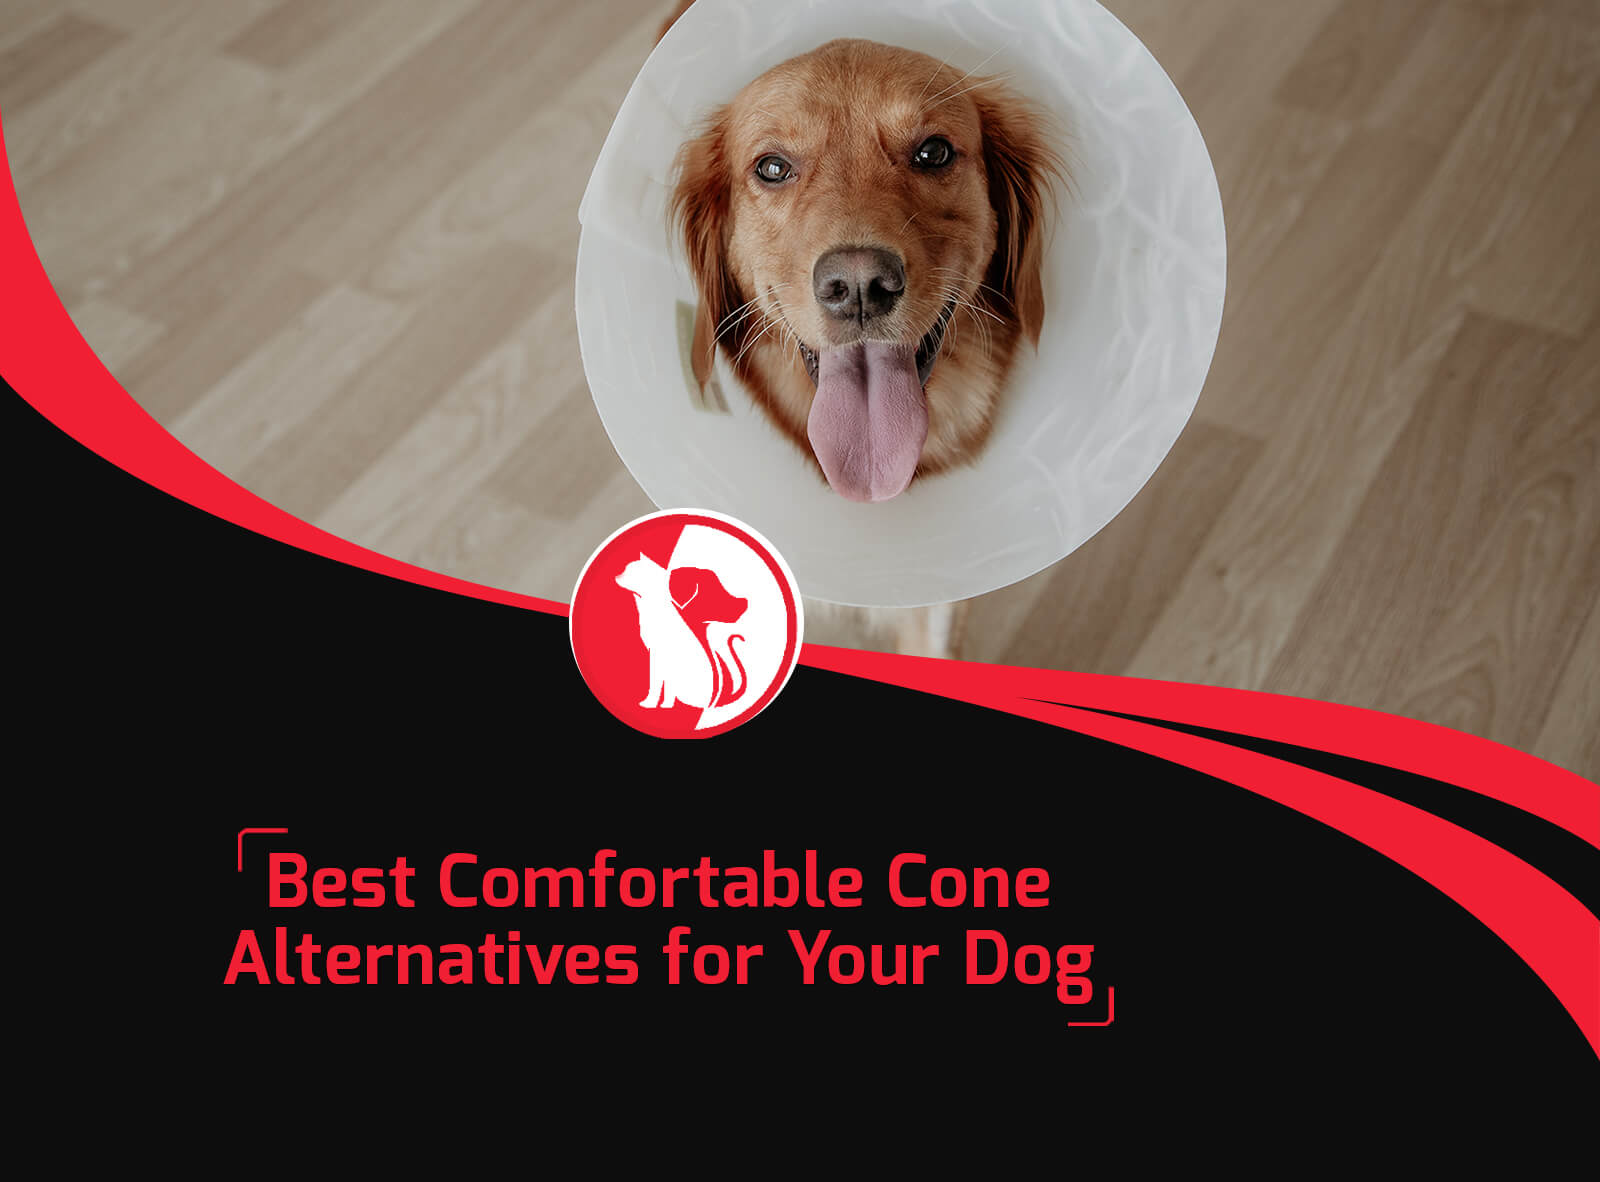 Best Comfortable Cone Alternatives for Your Dog